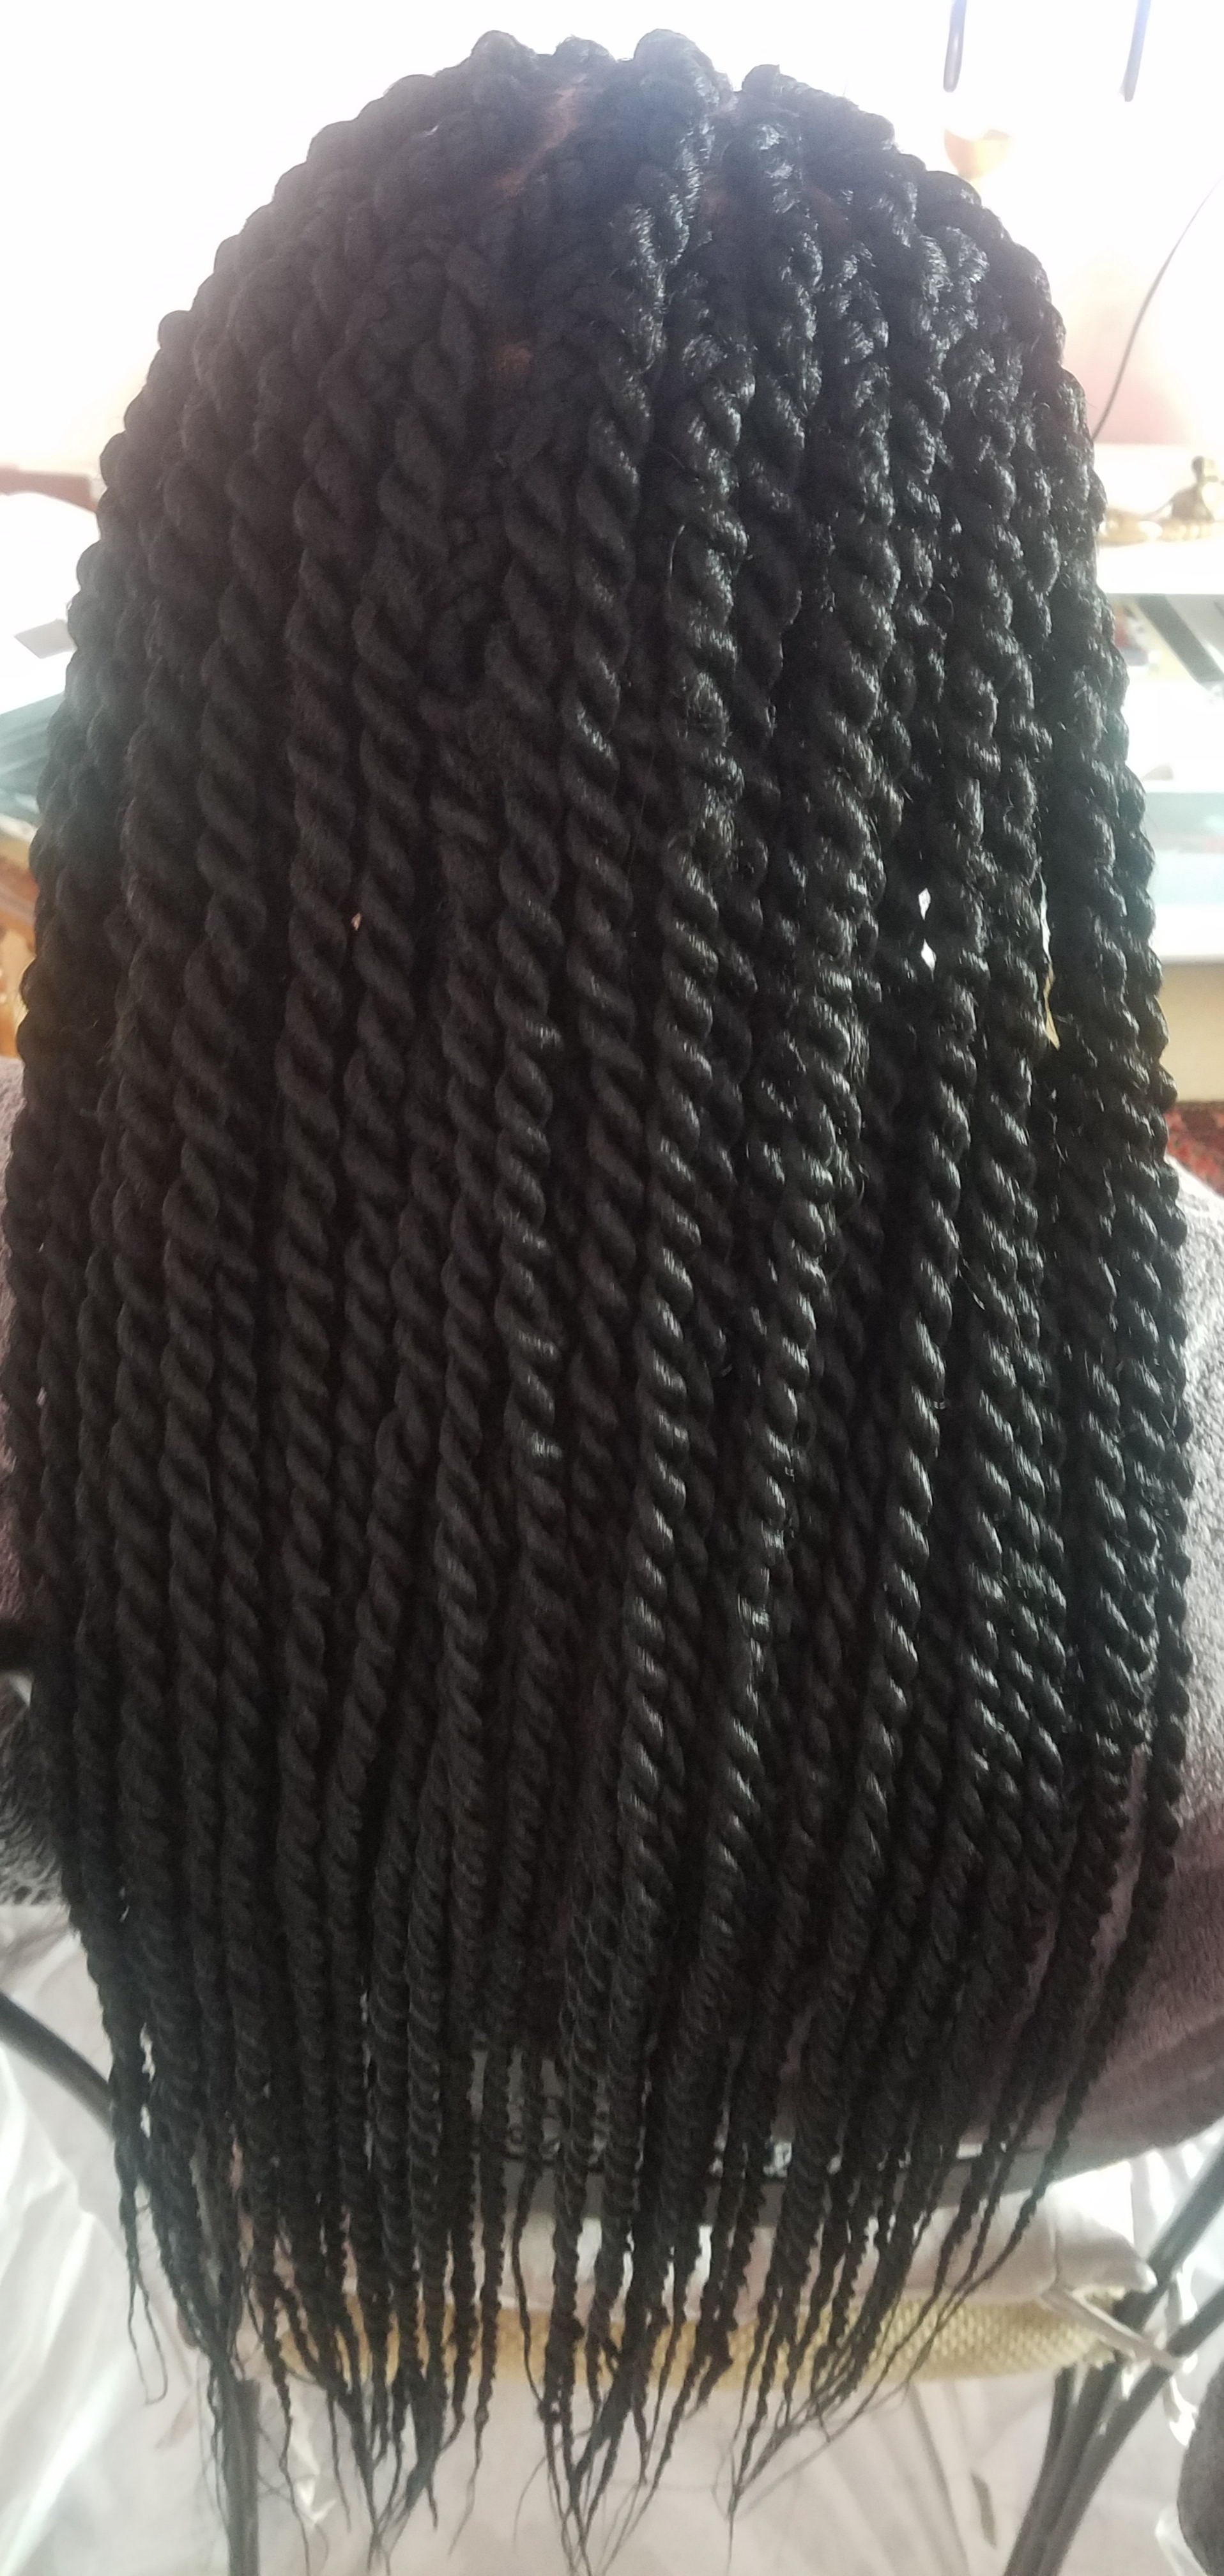 salon de coiffure afro tresse tresses box braids crochet braids vanilles tissages paris 75 77 78 91 92 93 94 95 IAIWMUQI